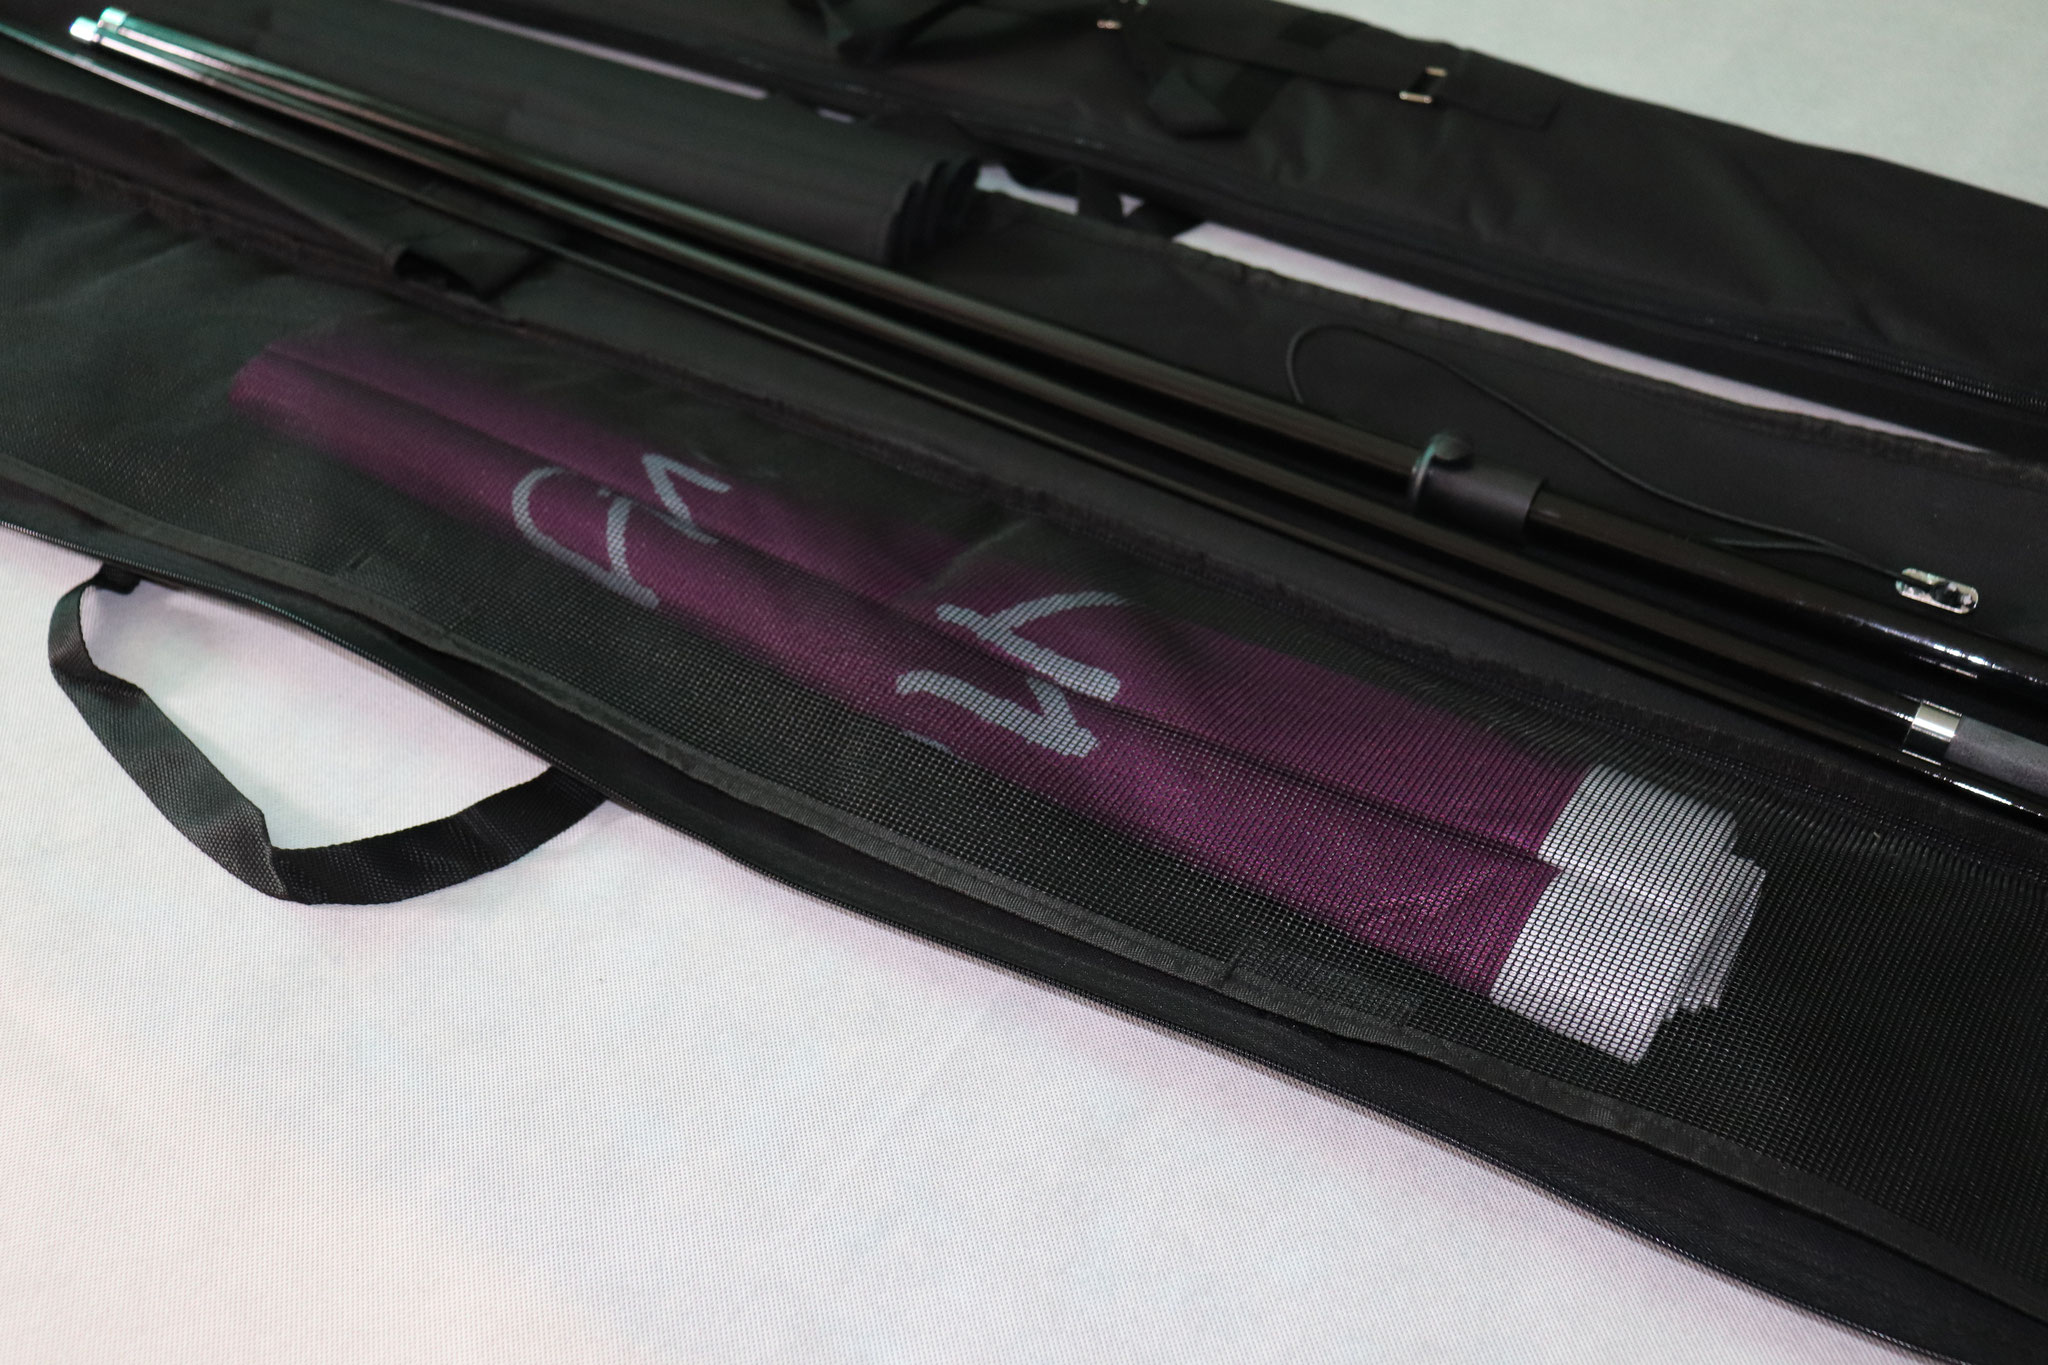 Fibrelight Printed Feather Flags - Printed Graphic Storage Pocket